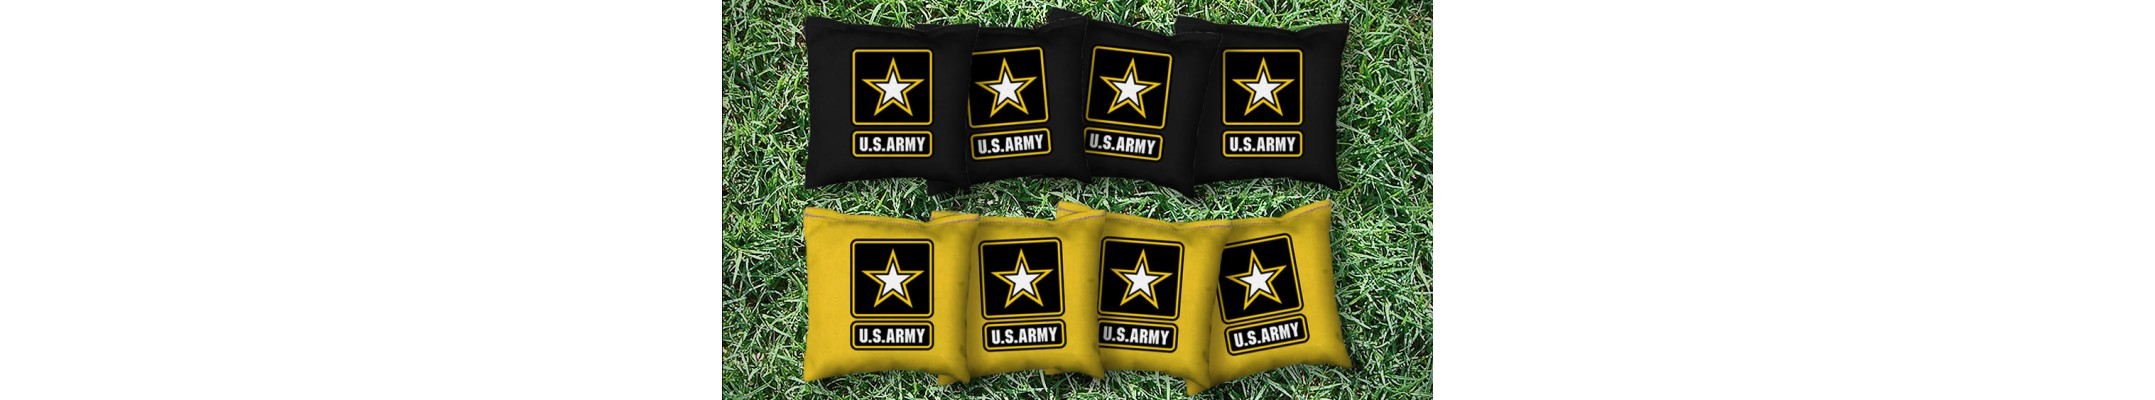 The Military Bags